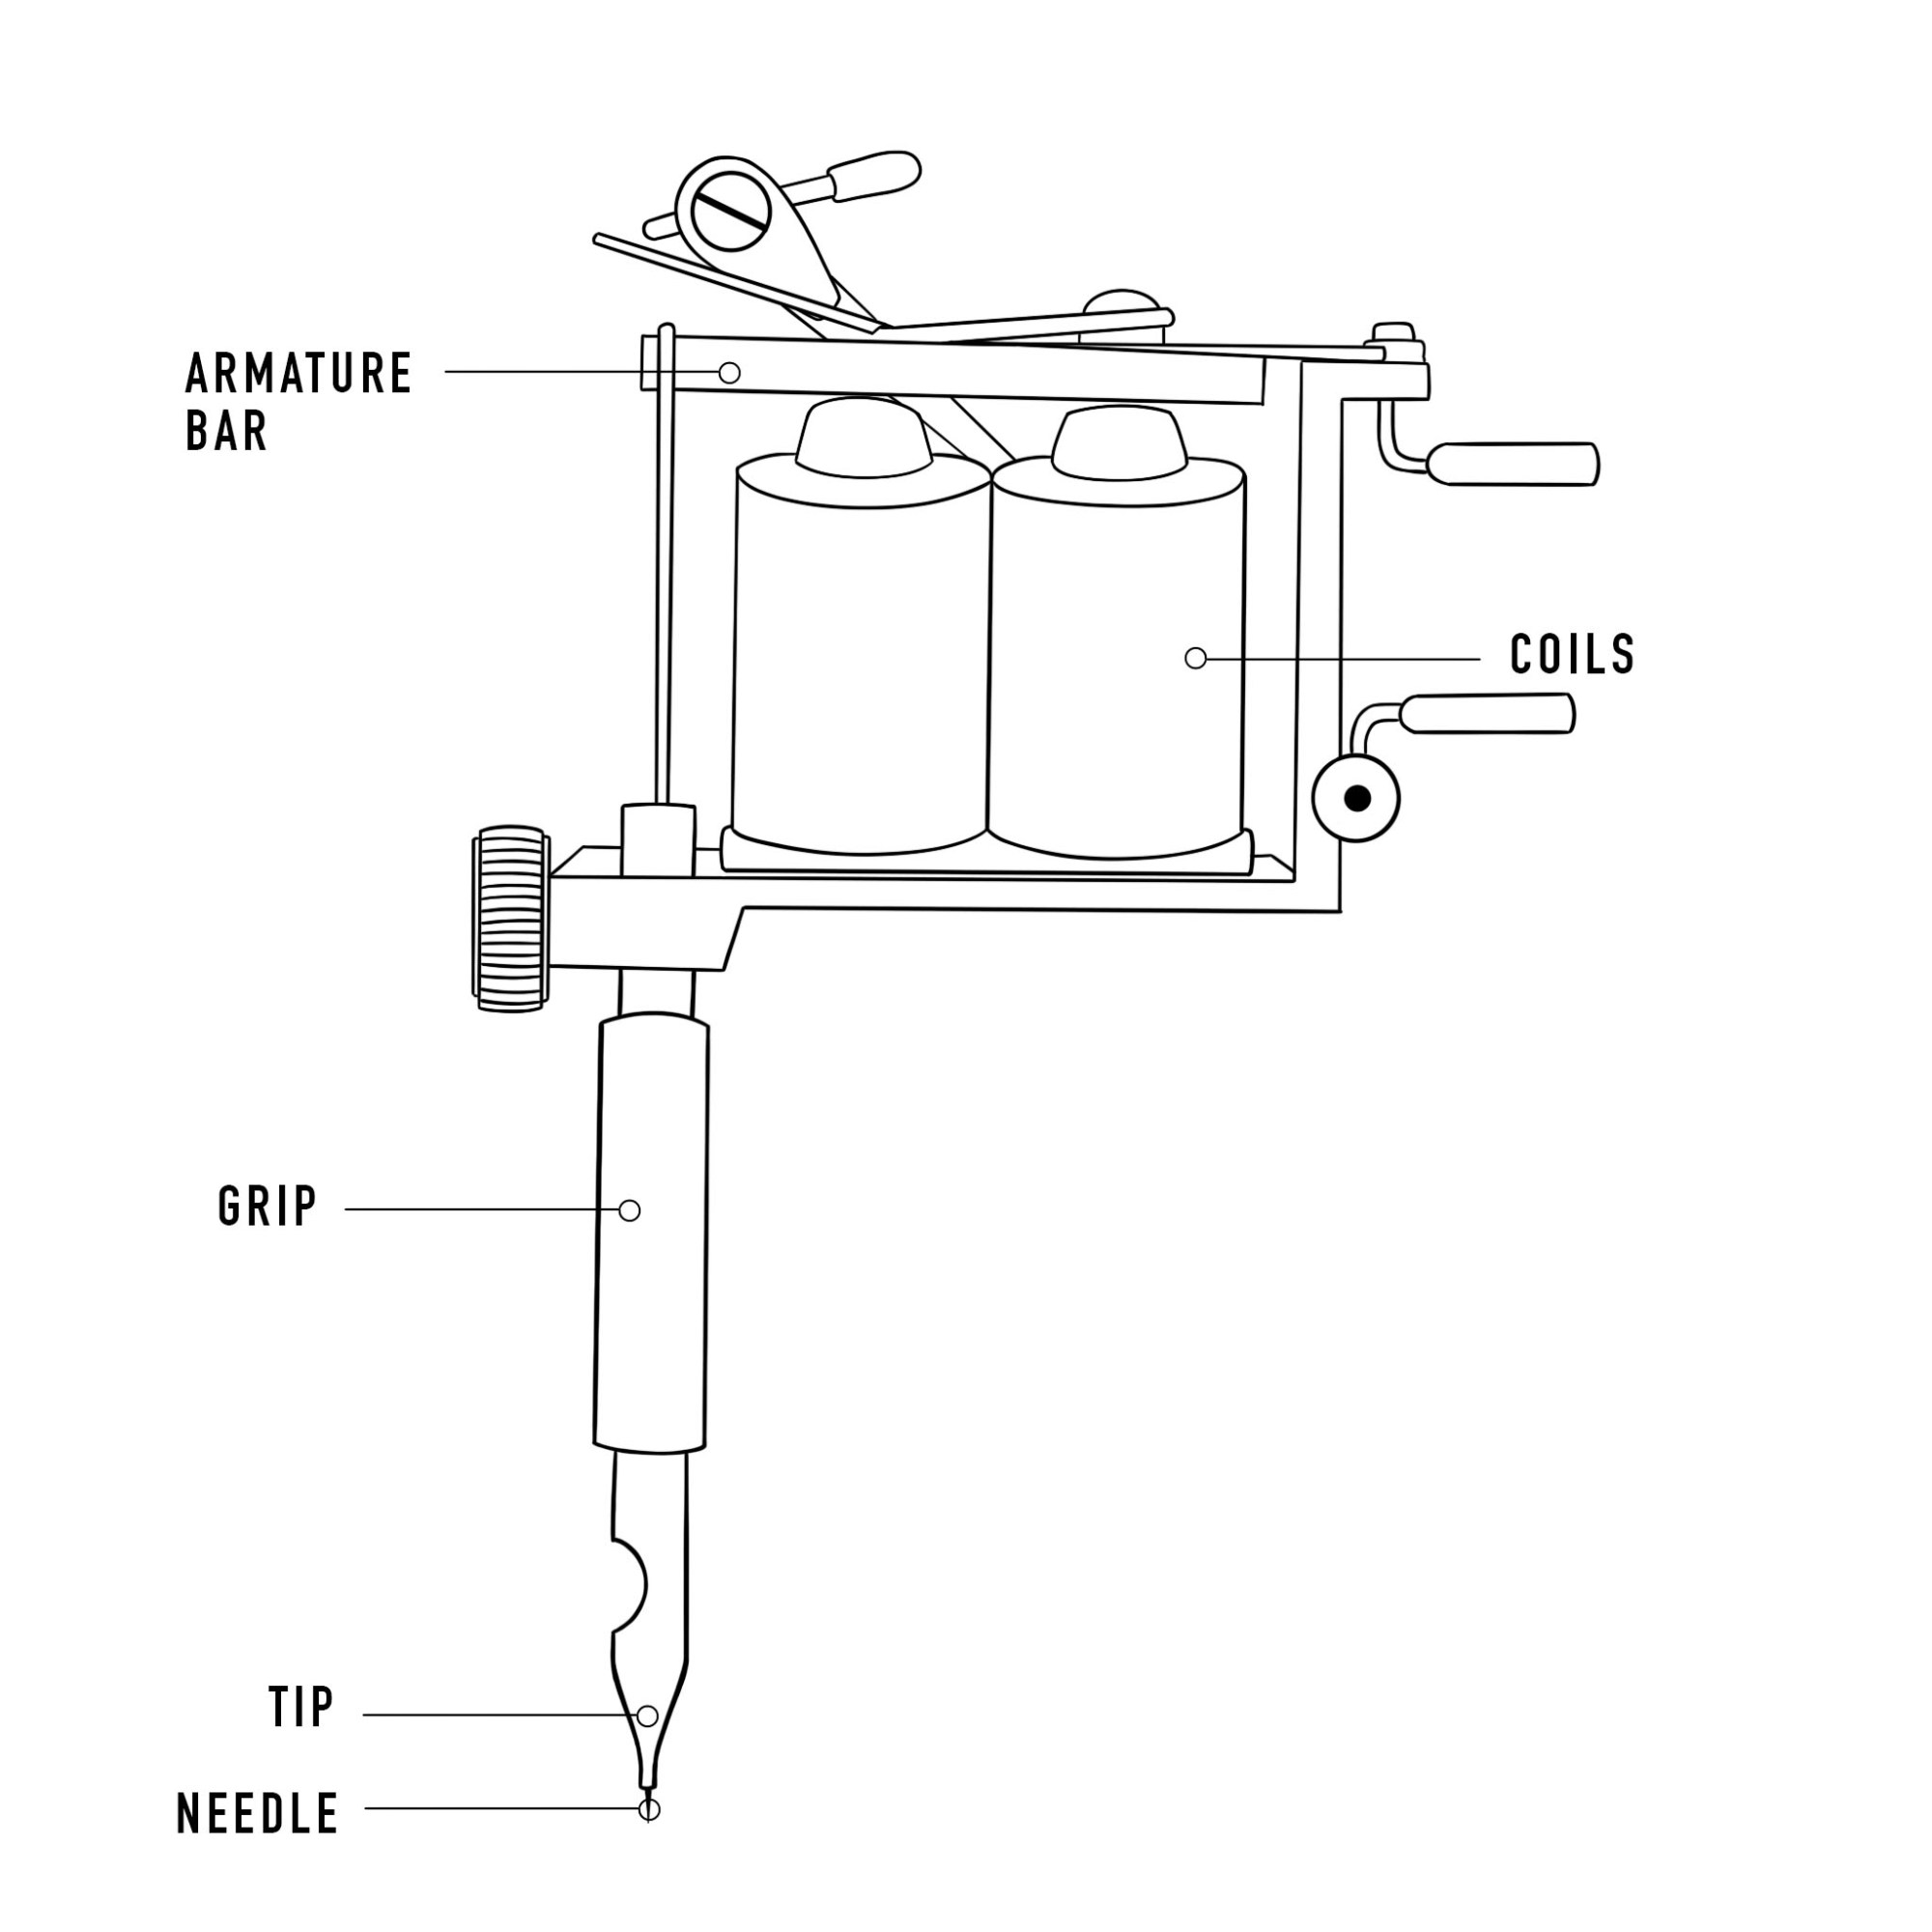 hight resolution of another type of tattoo machine is the rotary motored machine which powers a small spinning motor attached to an armature which produces an up and down